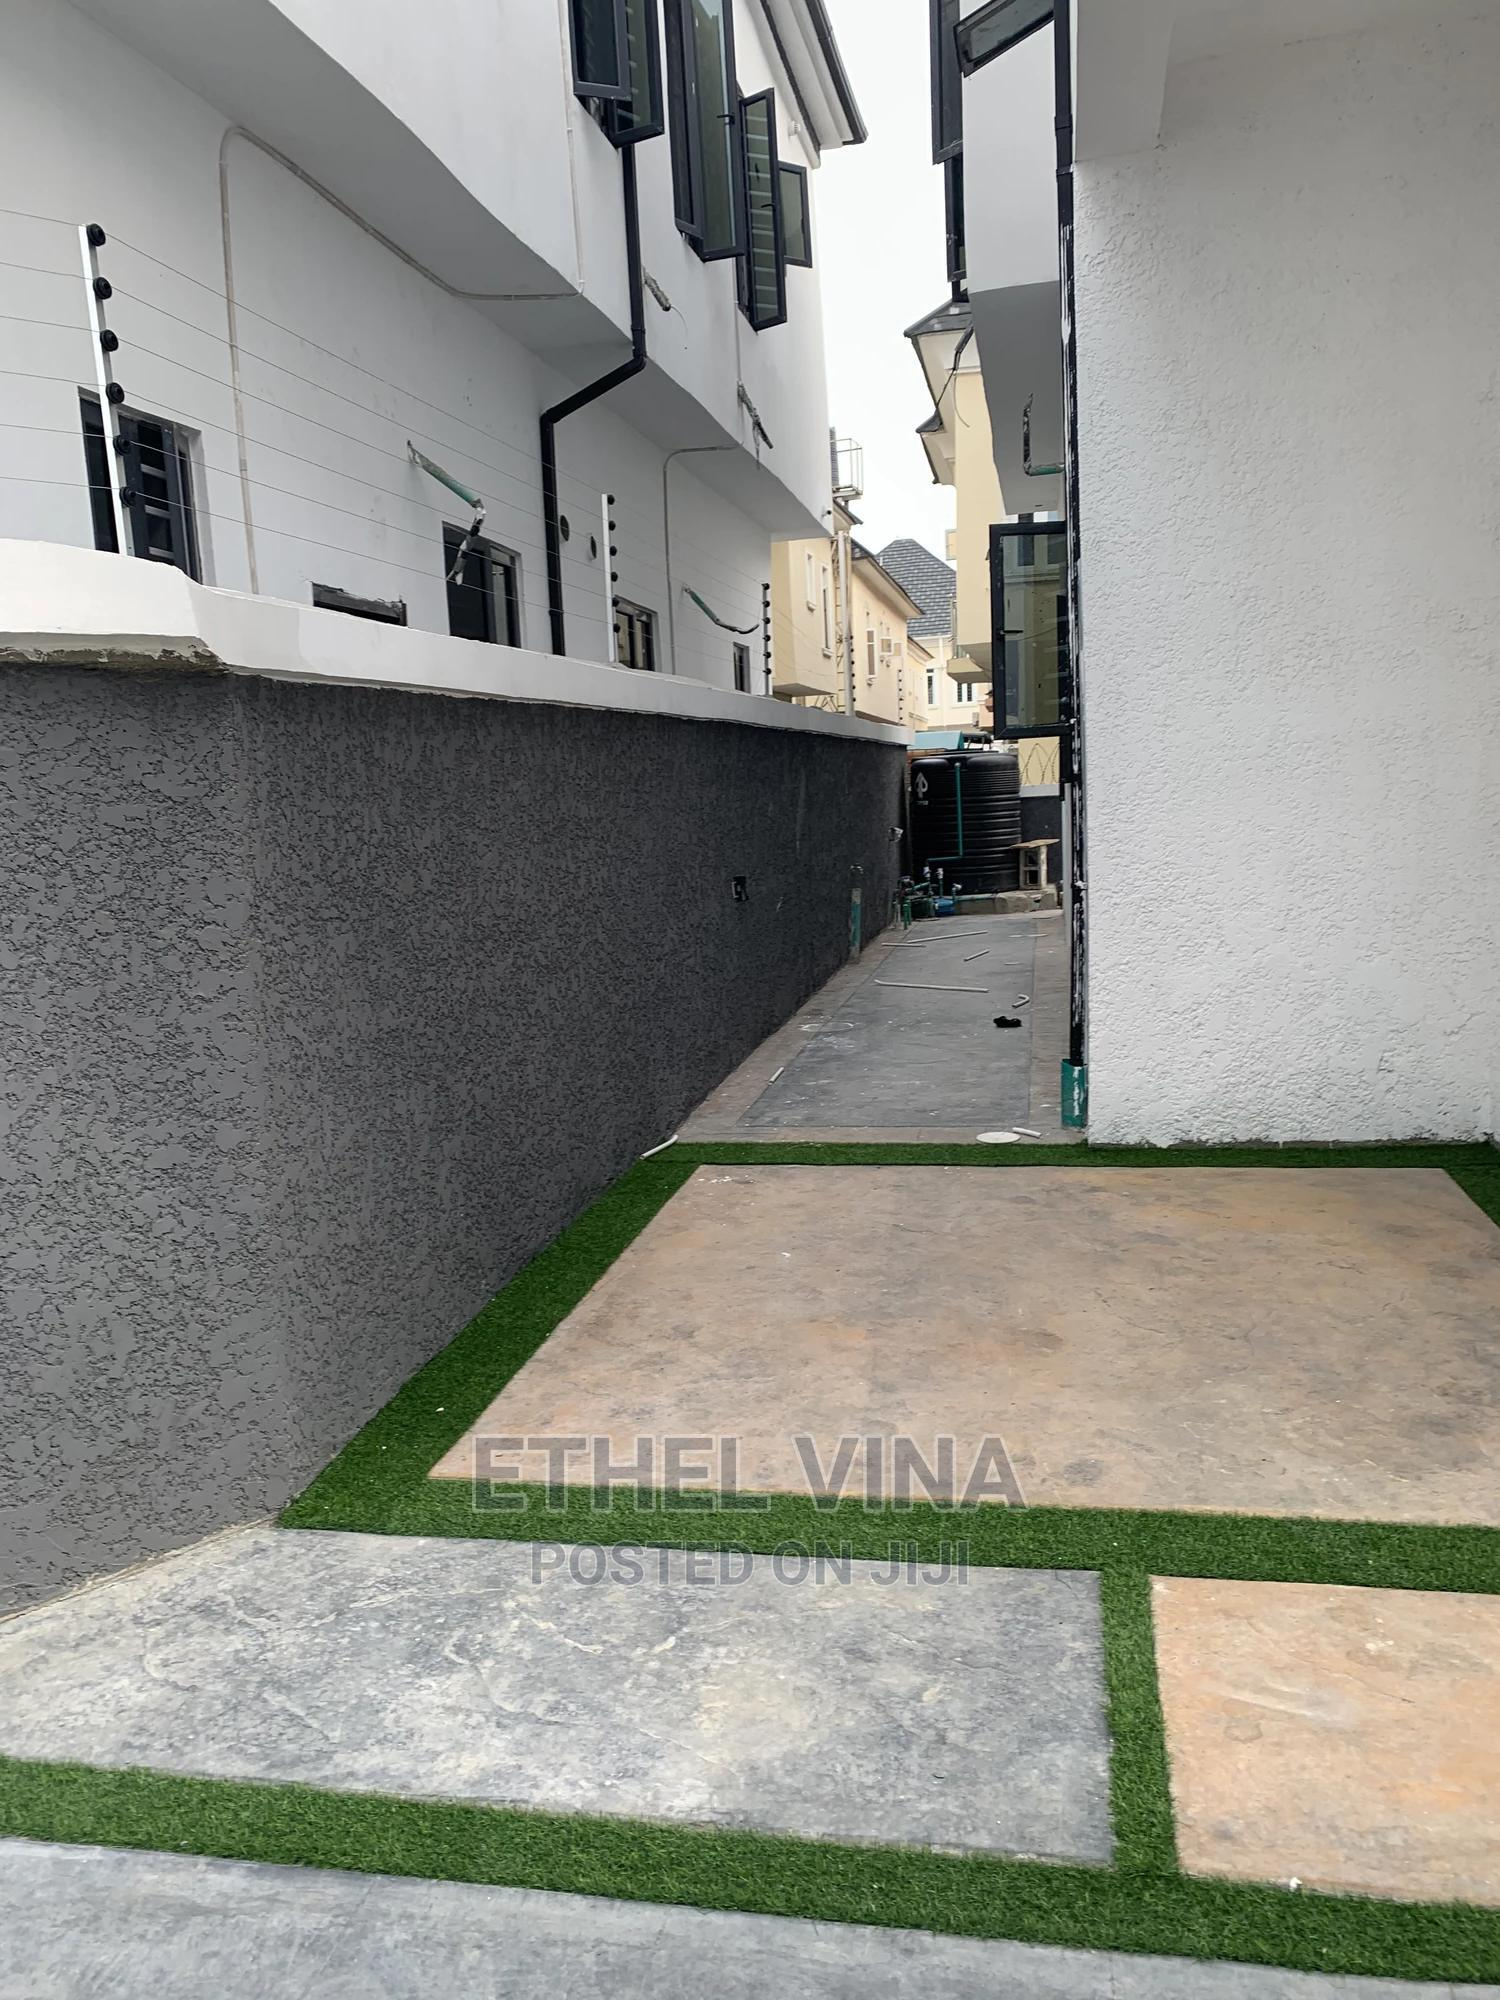 5 Bedrooms Duplex for Sale Lekki   Houses & Apartments For Sale for sale in Lekki, Lagos State, Nigeria